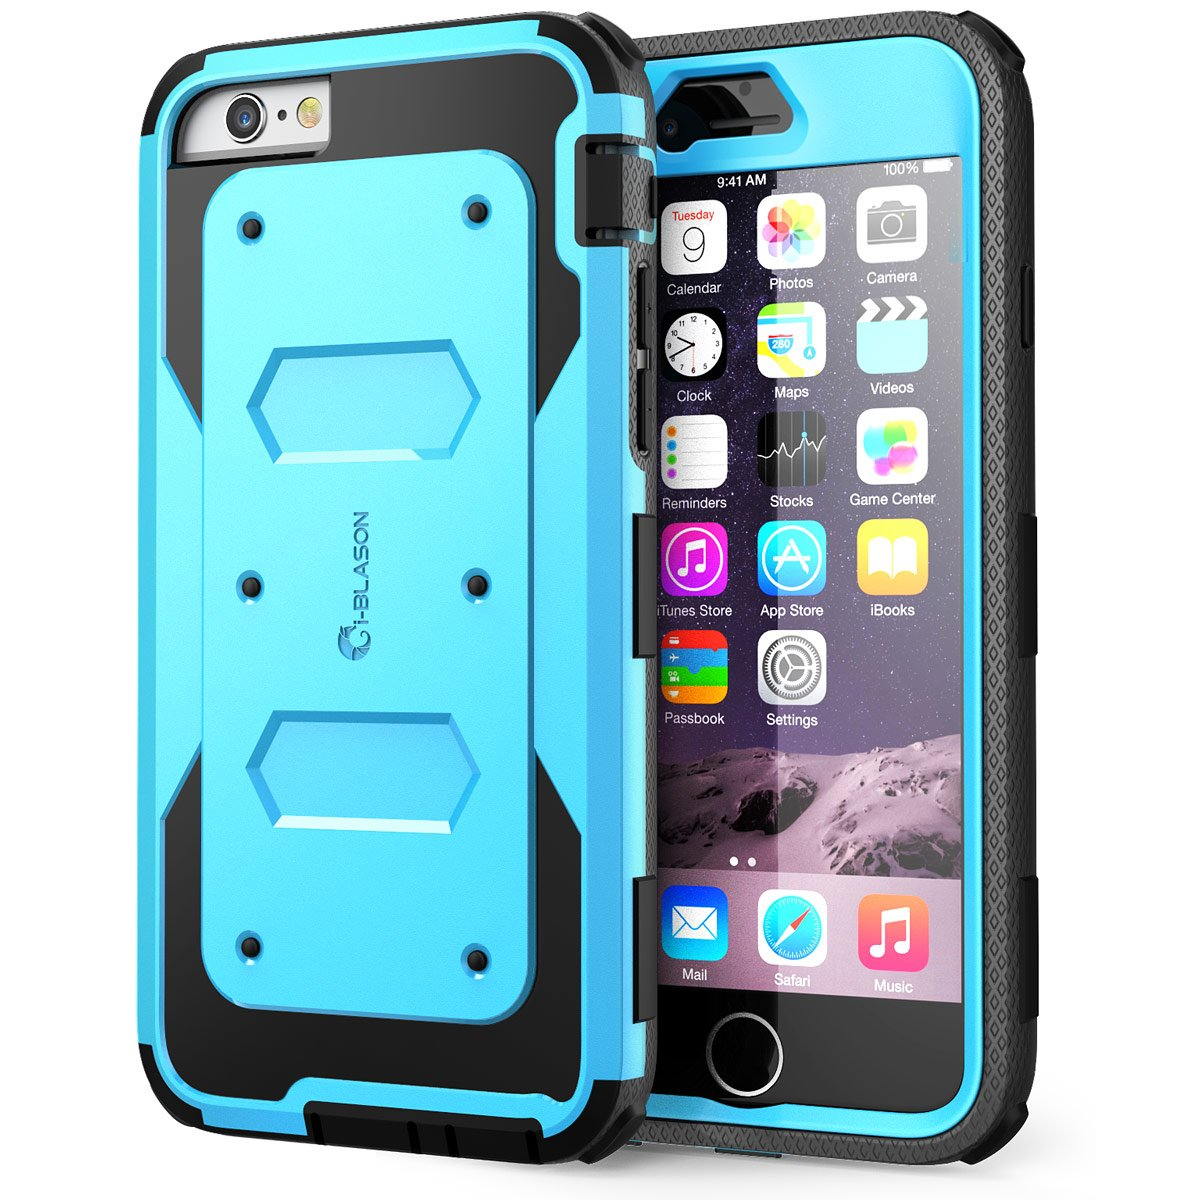 iPhone 6s Plus Case, [Armorbox] i-Blason Built-in [Screen Protector] Heavy Duty Shock Reduction [Bumper] for Apple iPhone 6 Plus 5.5 Inch (Blue) by i-Blason